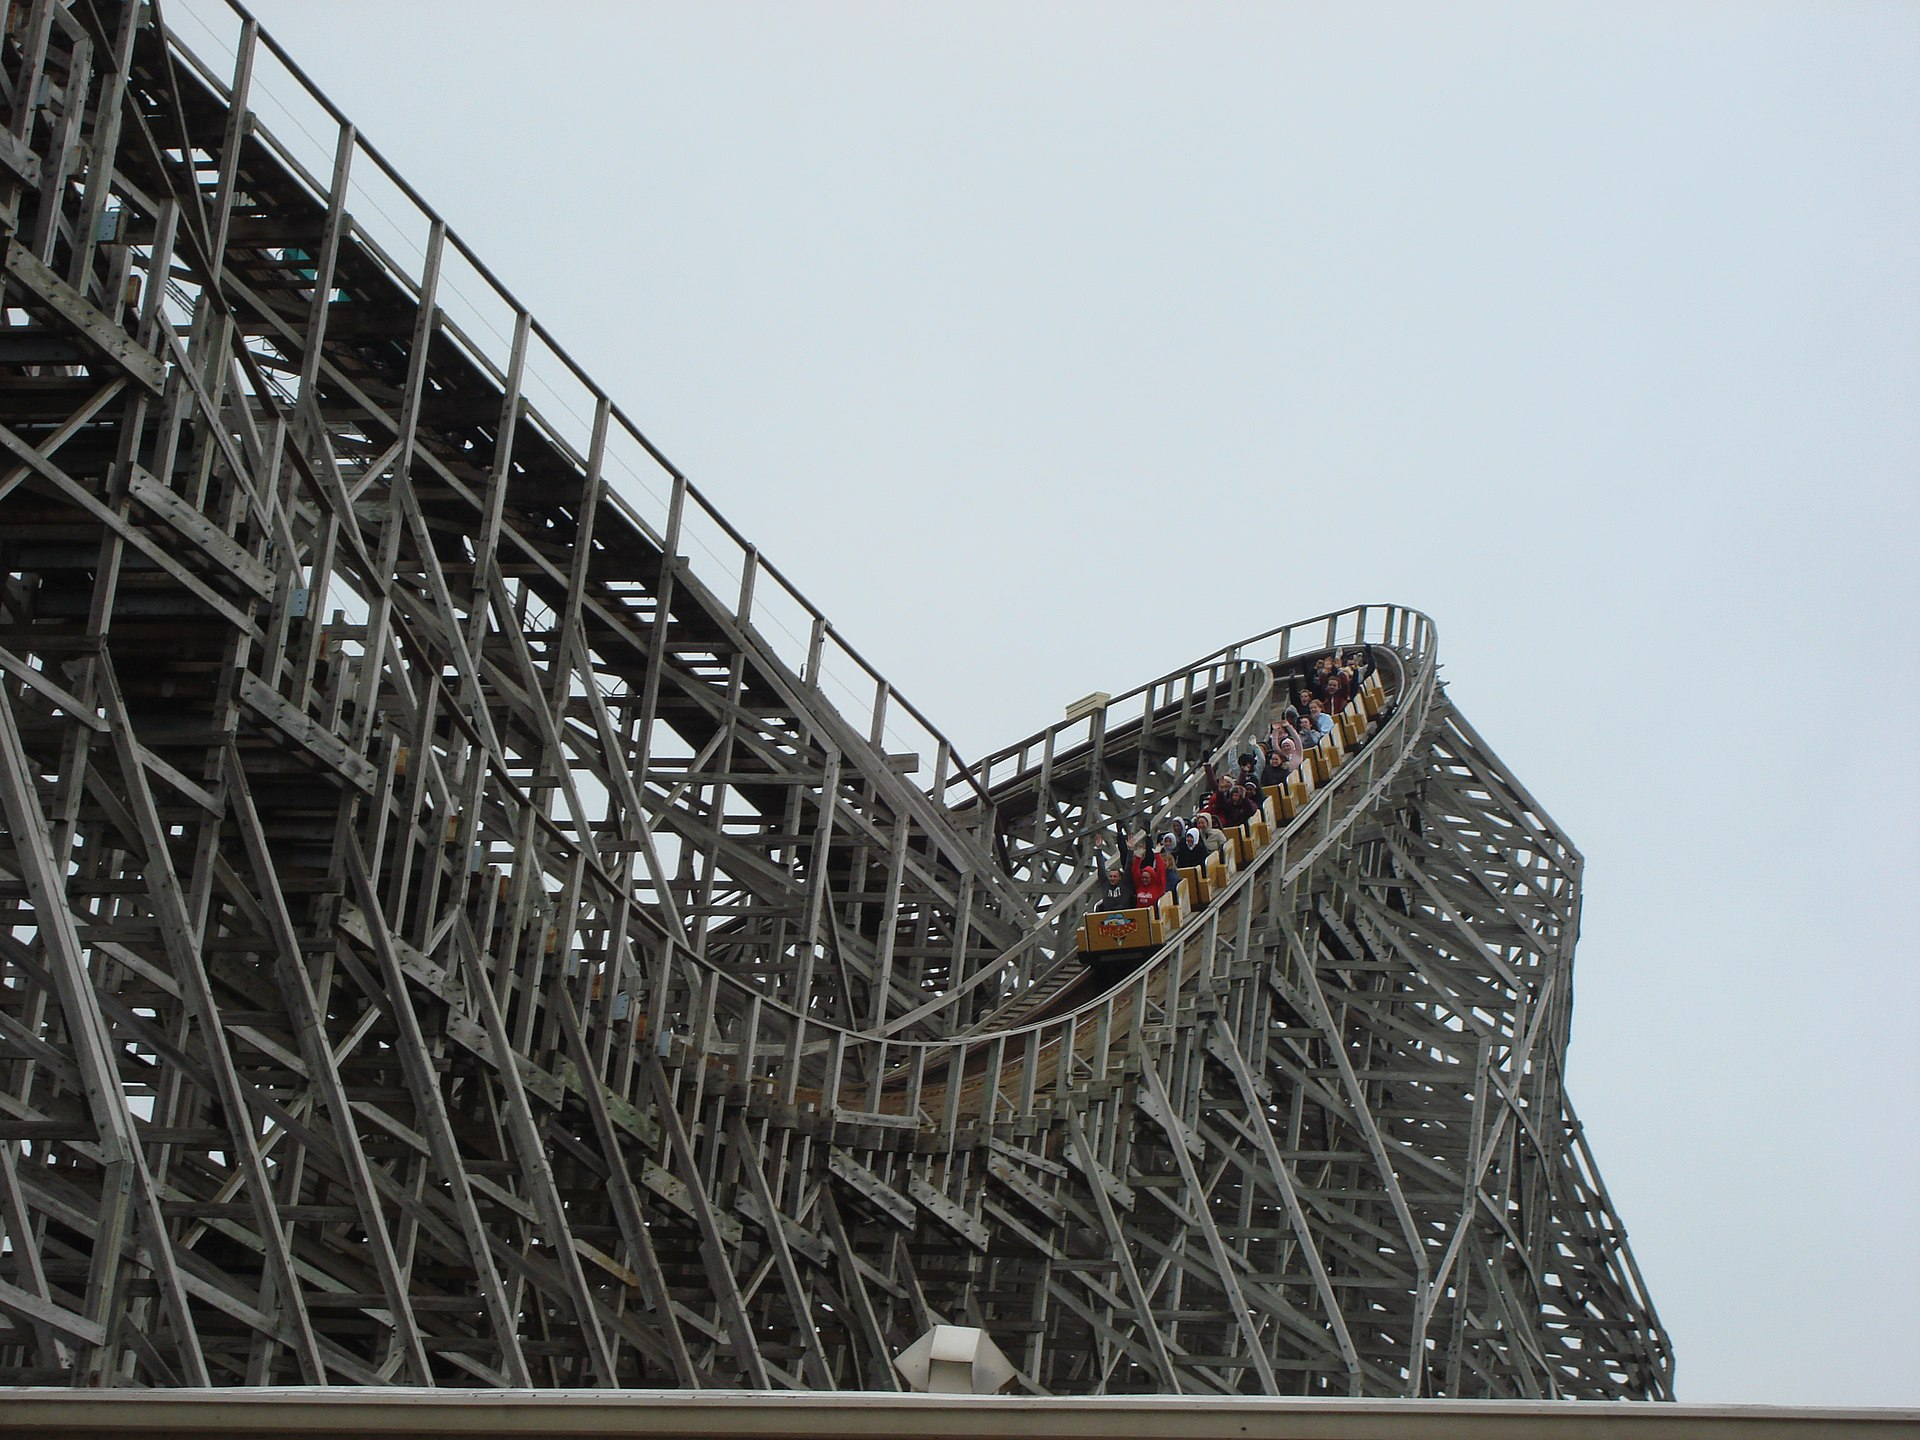 Large Coasters Wooden Roller Coaster Wikipedia